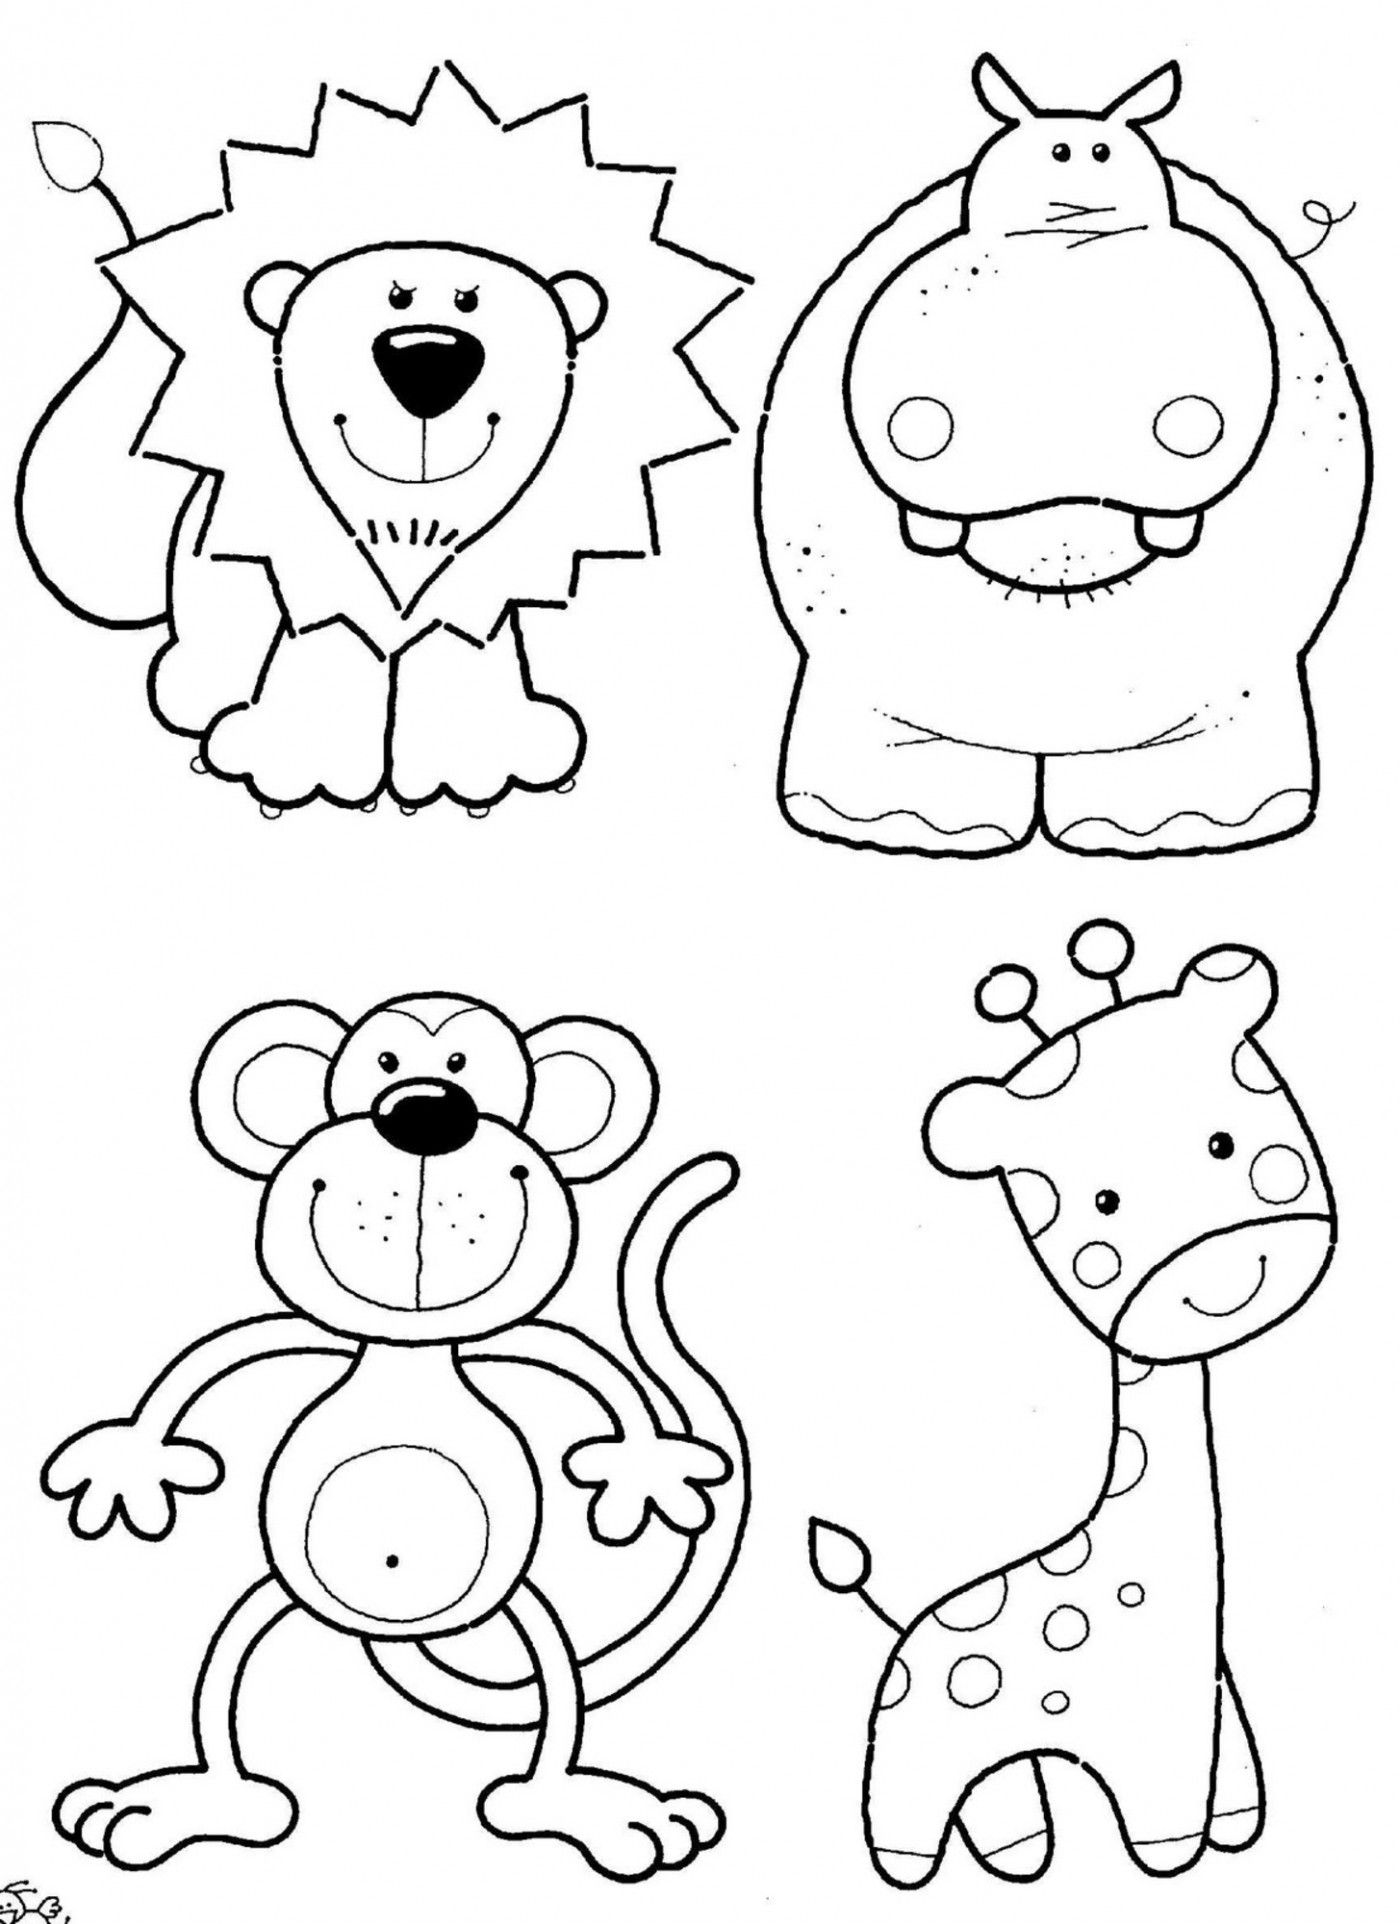 Colouring in pages wild animals - Colouring Sheets Wild Animals Wild Animal Safari Coloring Pages High Quality Coloring Pages